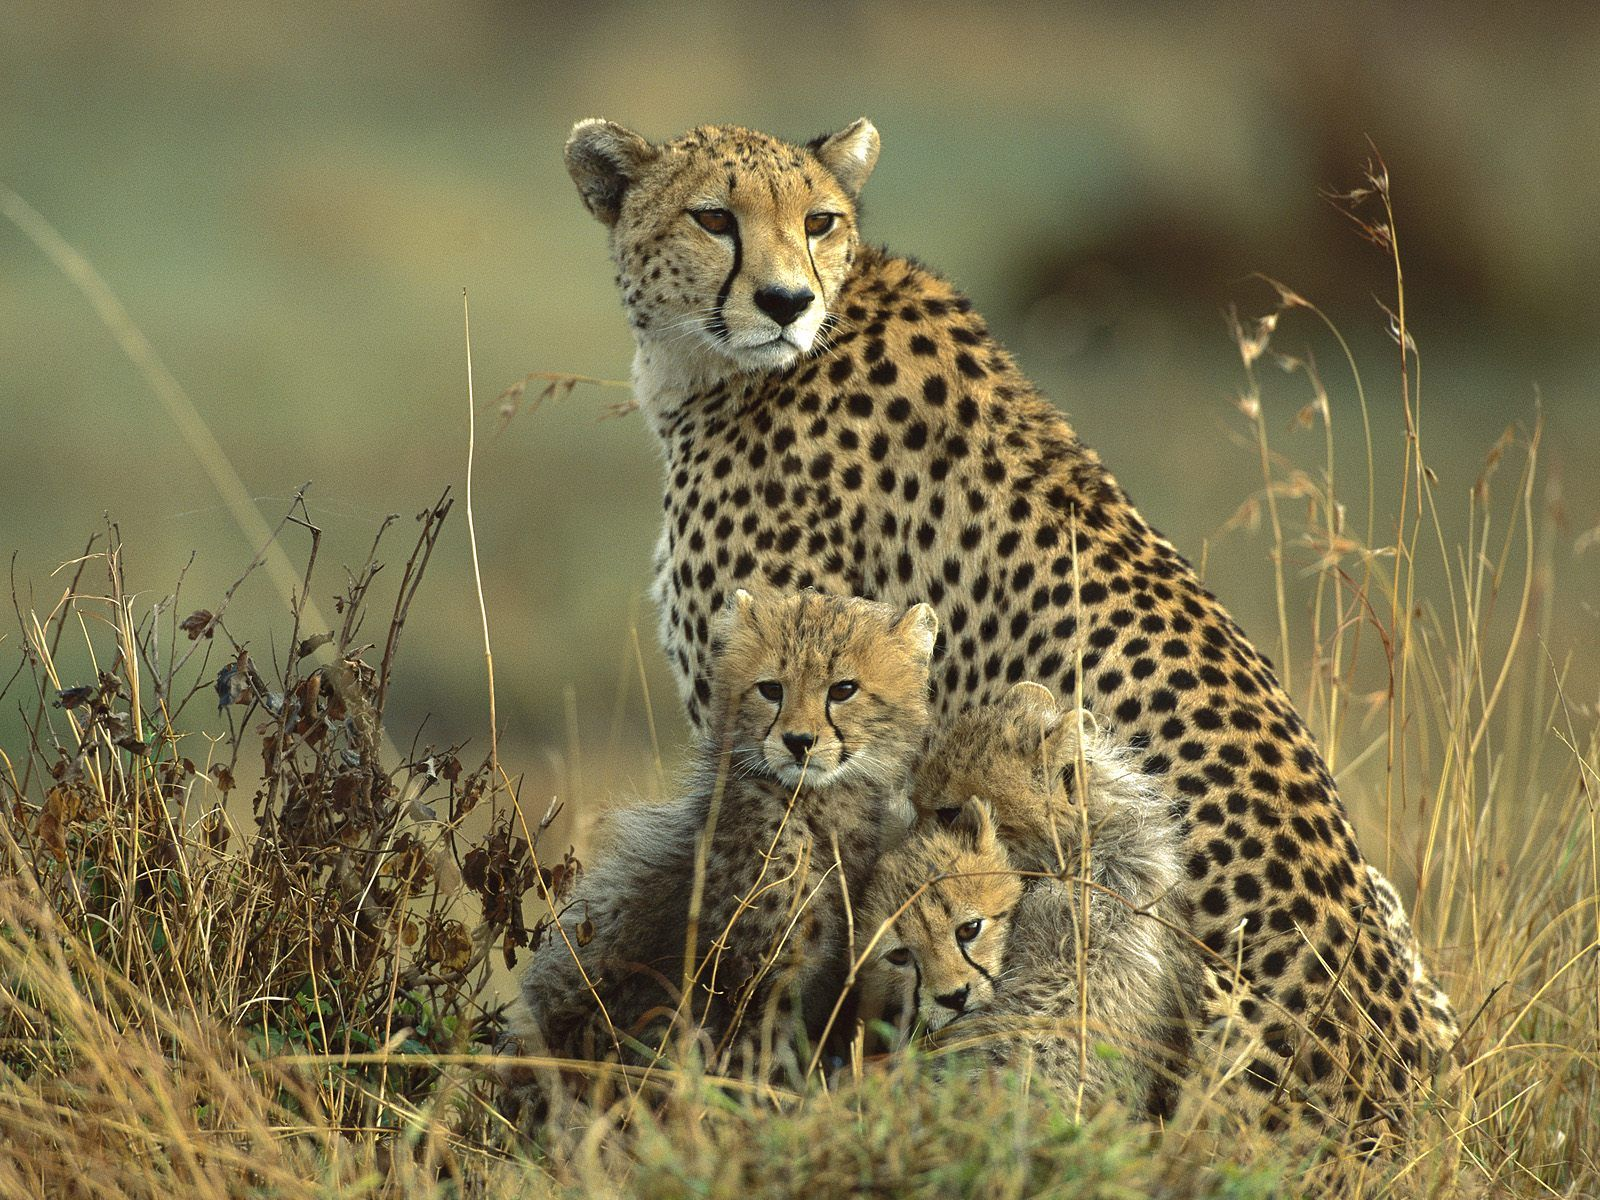 cheetah - pets cute and docile